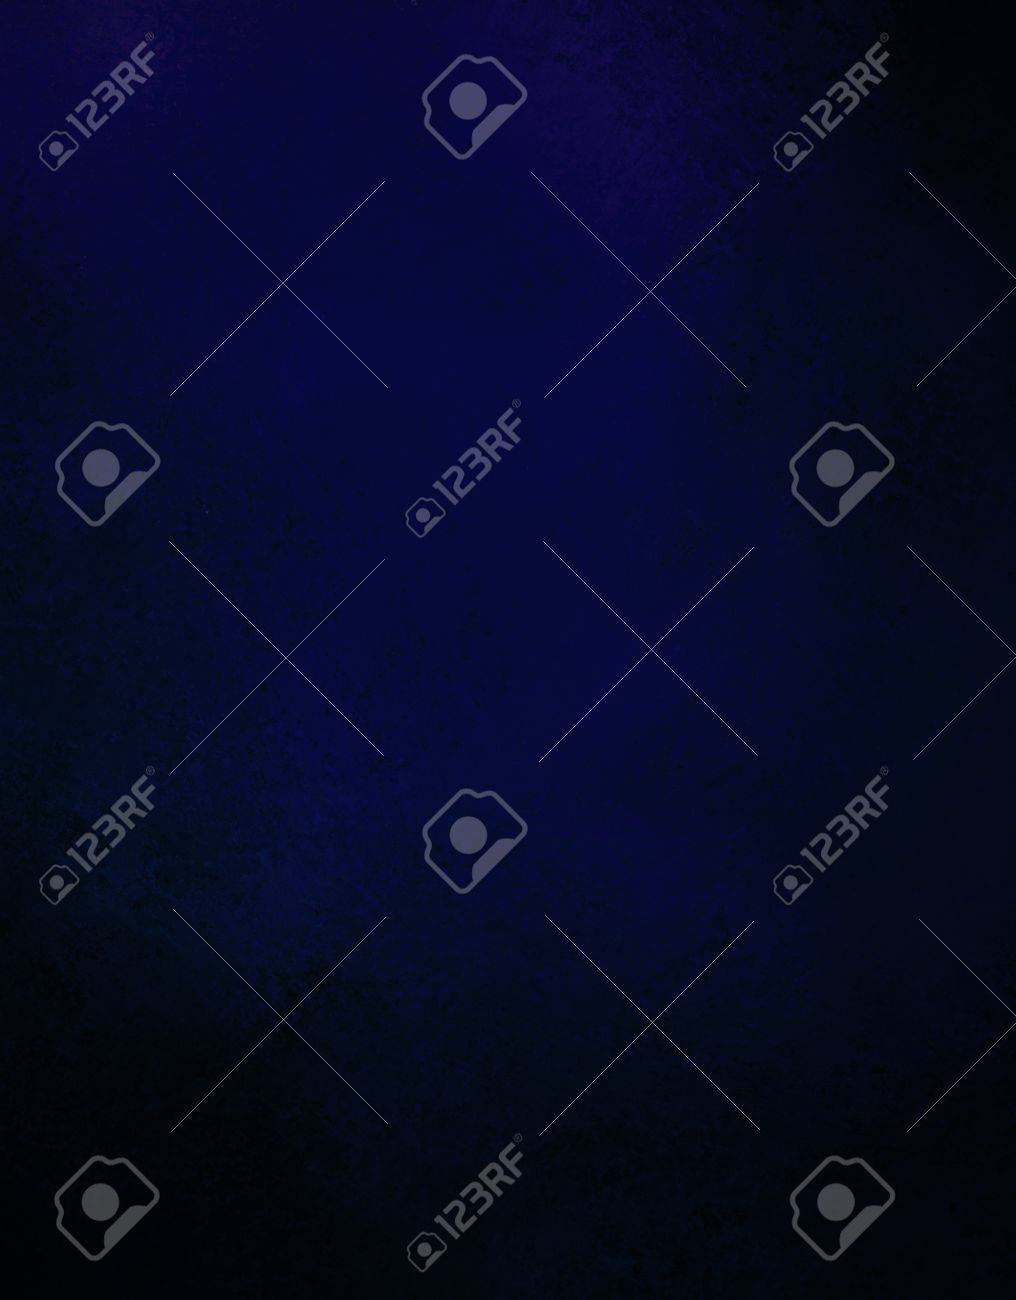 black blue background, dark colors, with vintage grunge background texture, abstract spots and stains around border, for elegant brochures, luxury ads, website templates, scrapbook - 14674350